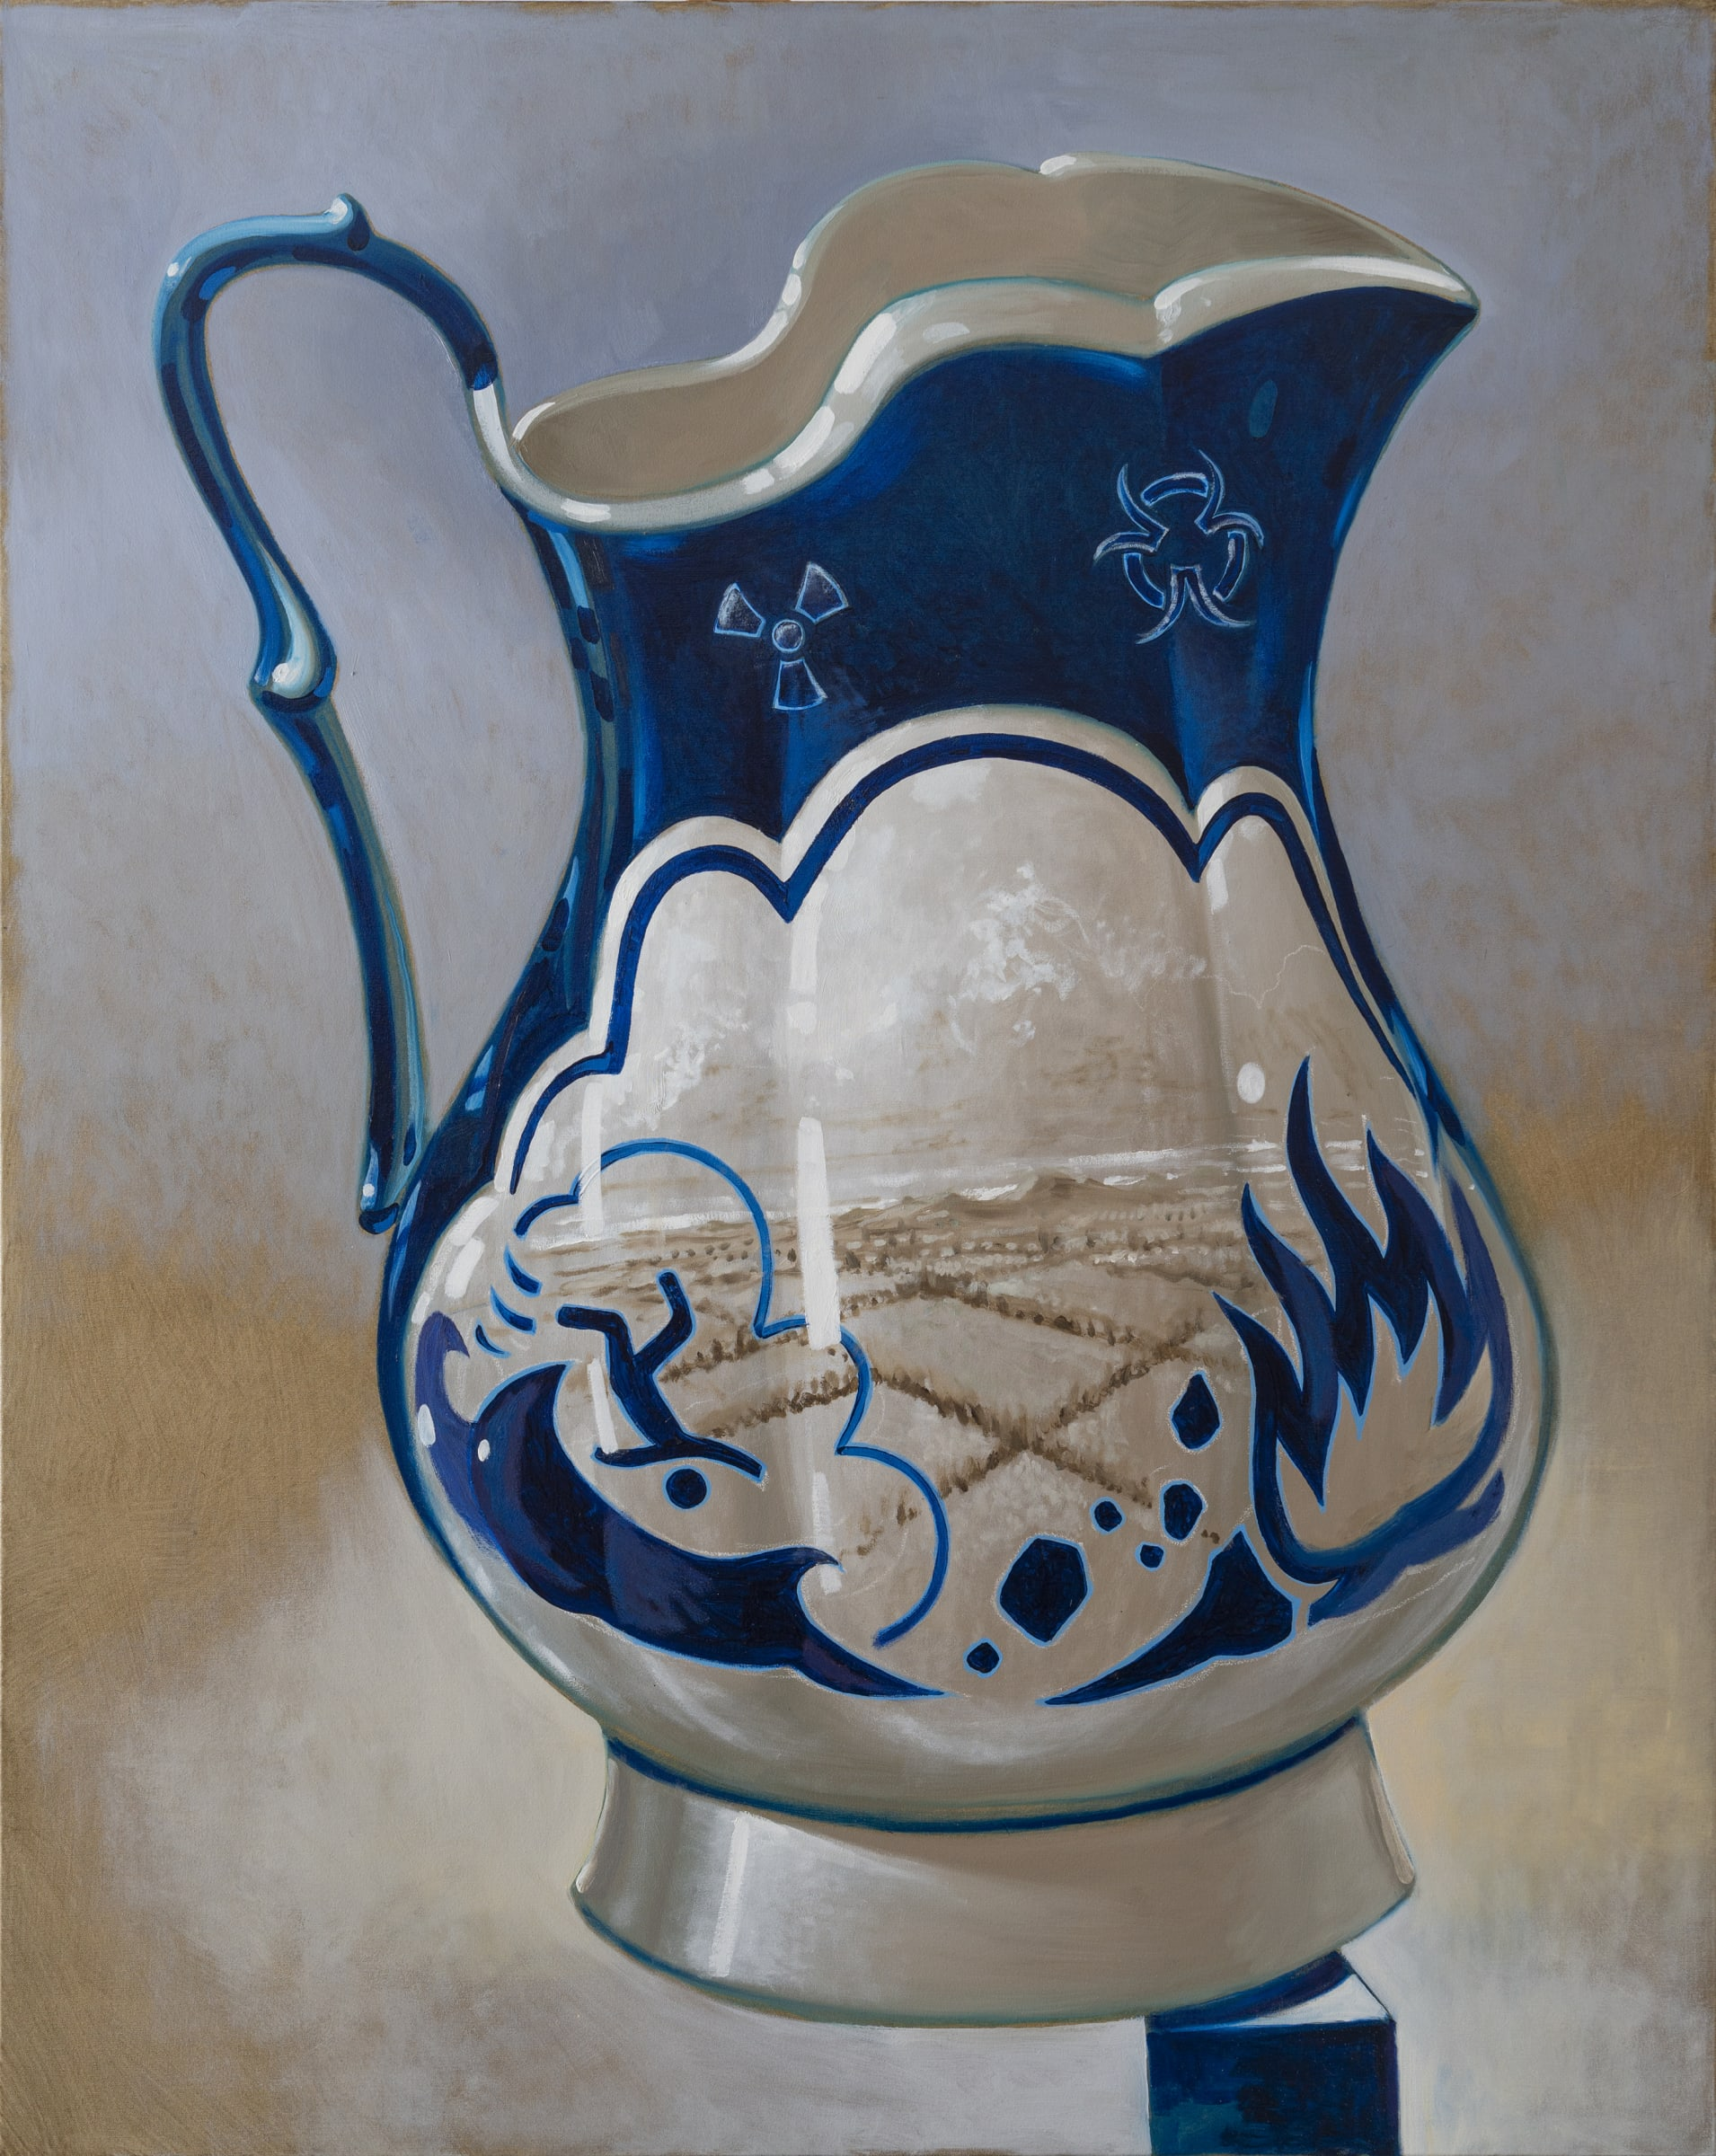 <span class=&#34;link fancybox-details-link&#34;><a href=&#34;/artists/51-derek-cowie/works/7841-derek-cowie-blue-jug-2019/&#34;>View Detail Page</a></span><div class=&#34;artist&#34;><strong>Derek Cowie</strong></div> <div class=&#34;title&#34;><em>Blue Jug</em>, 2019</div> <div class=&#34;medium&#34;>Oil on canvas</div> <div class=&#34;dimensions&#34;>1520mm x 1210mm</div><div class=&#34;copyright_line&#34;>Copyright The Artist</div>